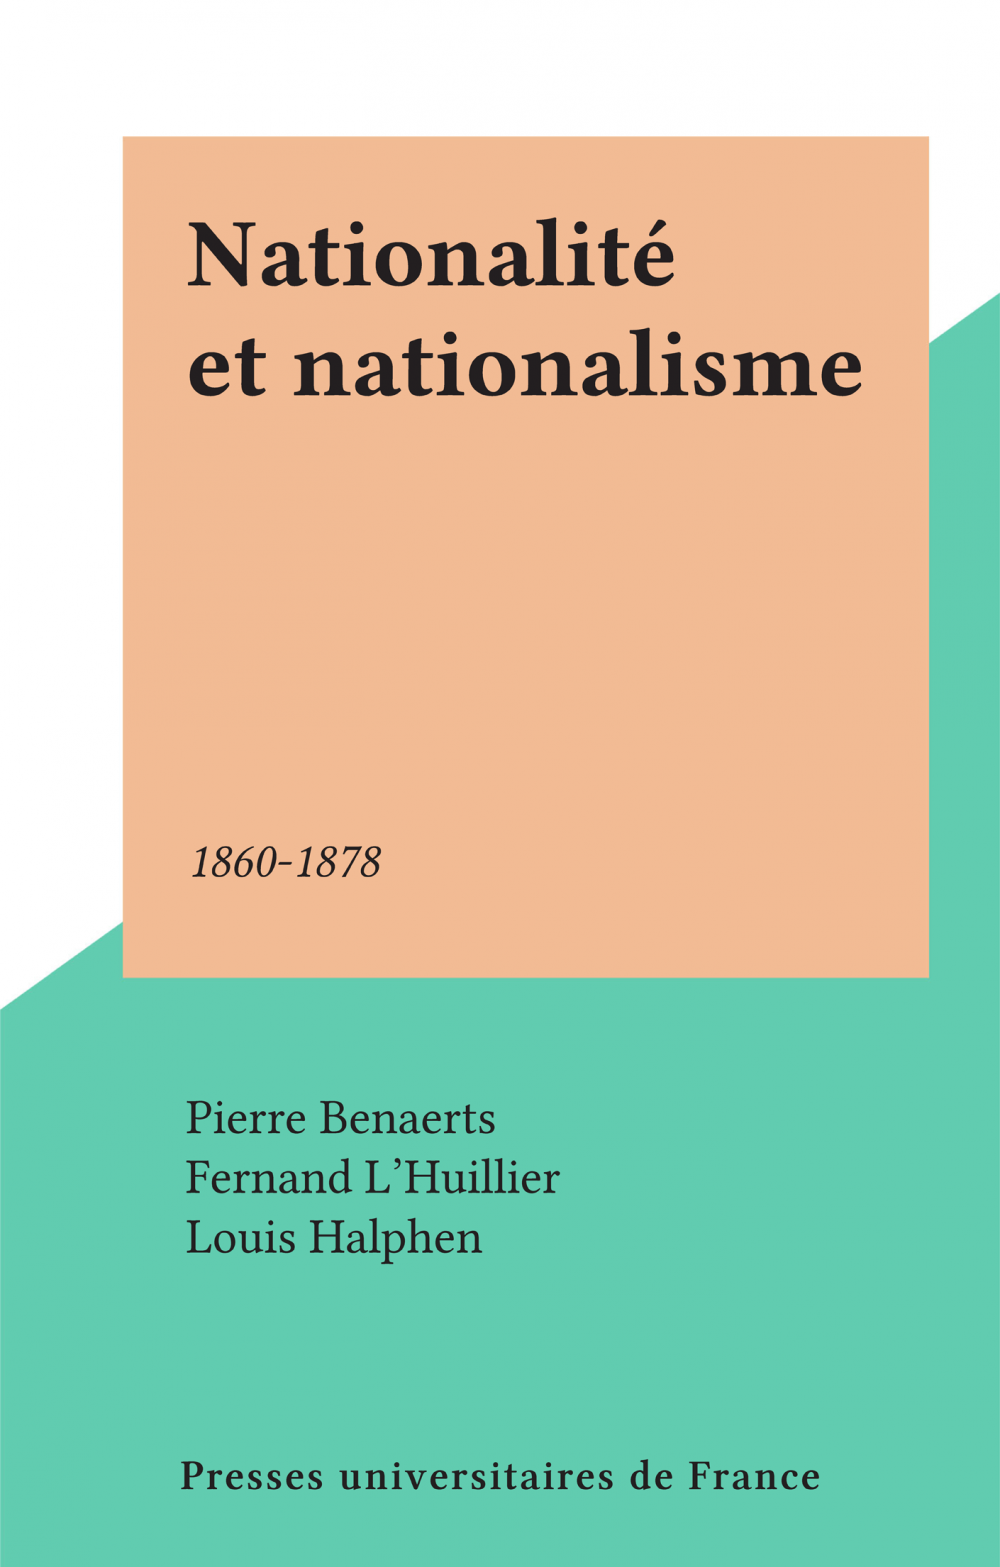 Nationalité et nationalisme